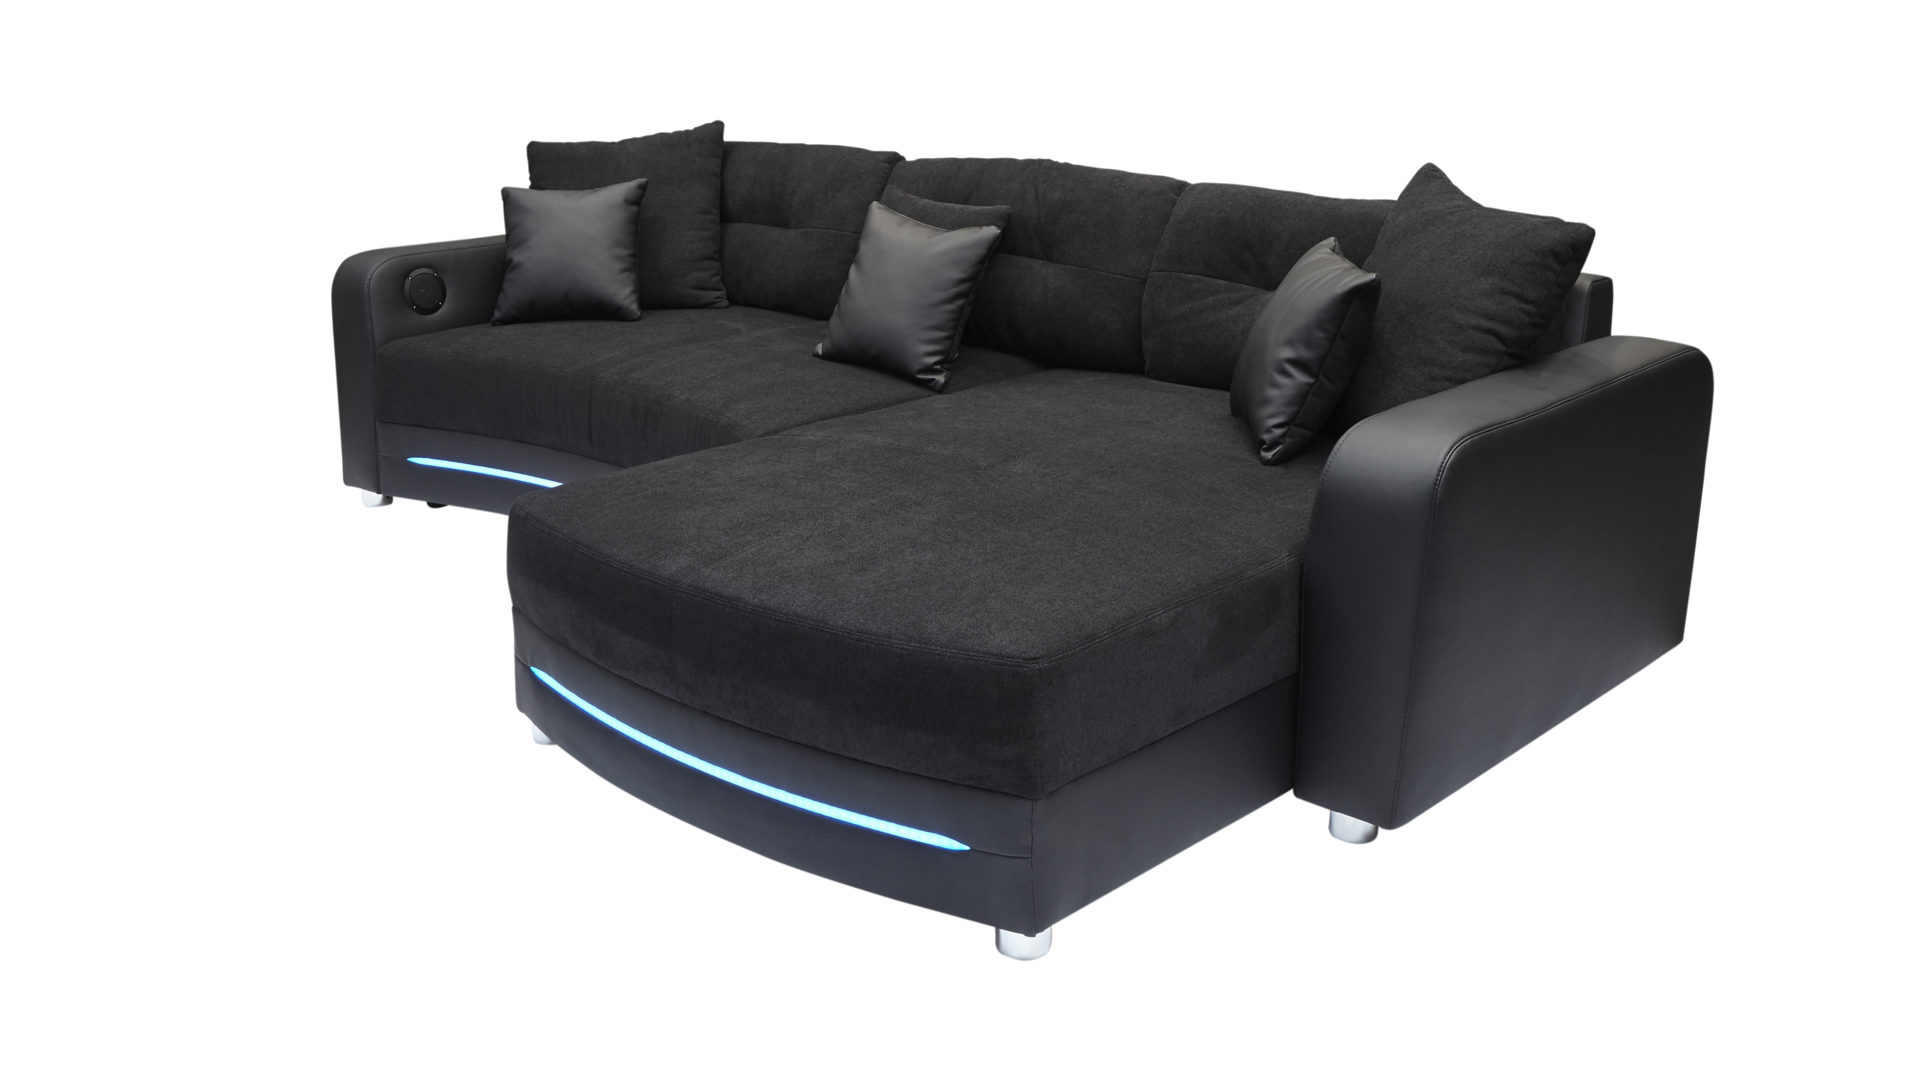 Couches Und Sofas Sofa Soundsystem Sofa Mit Led Und Soundsystem Gallery Of Large